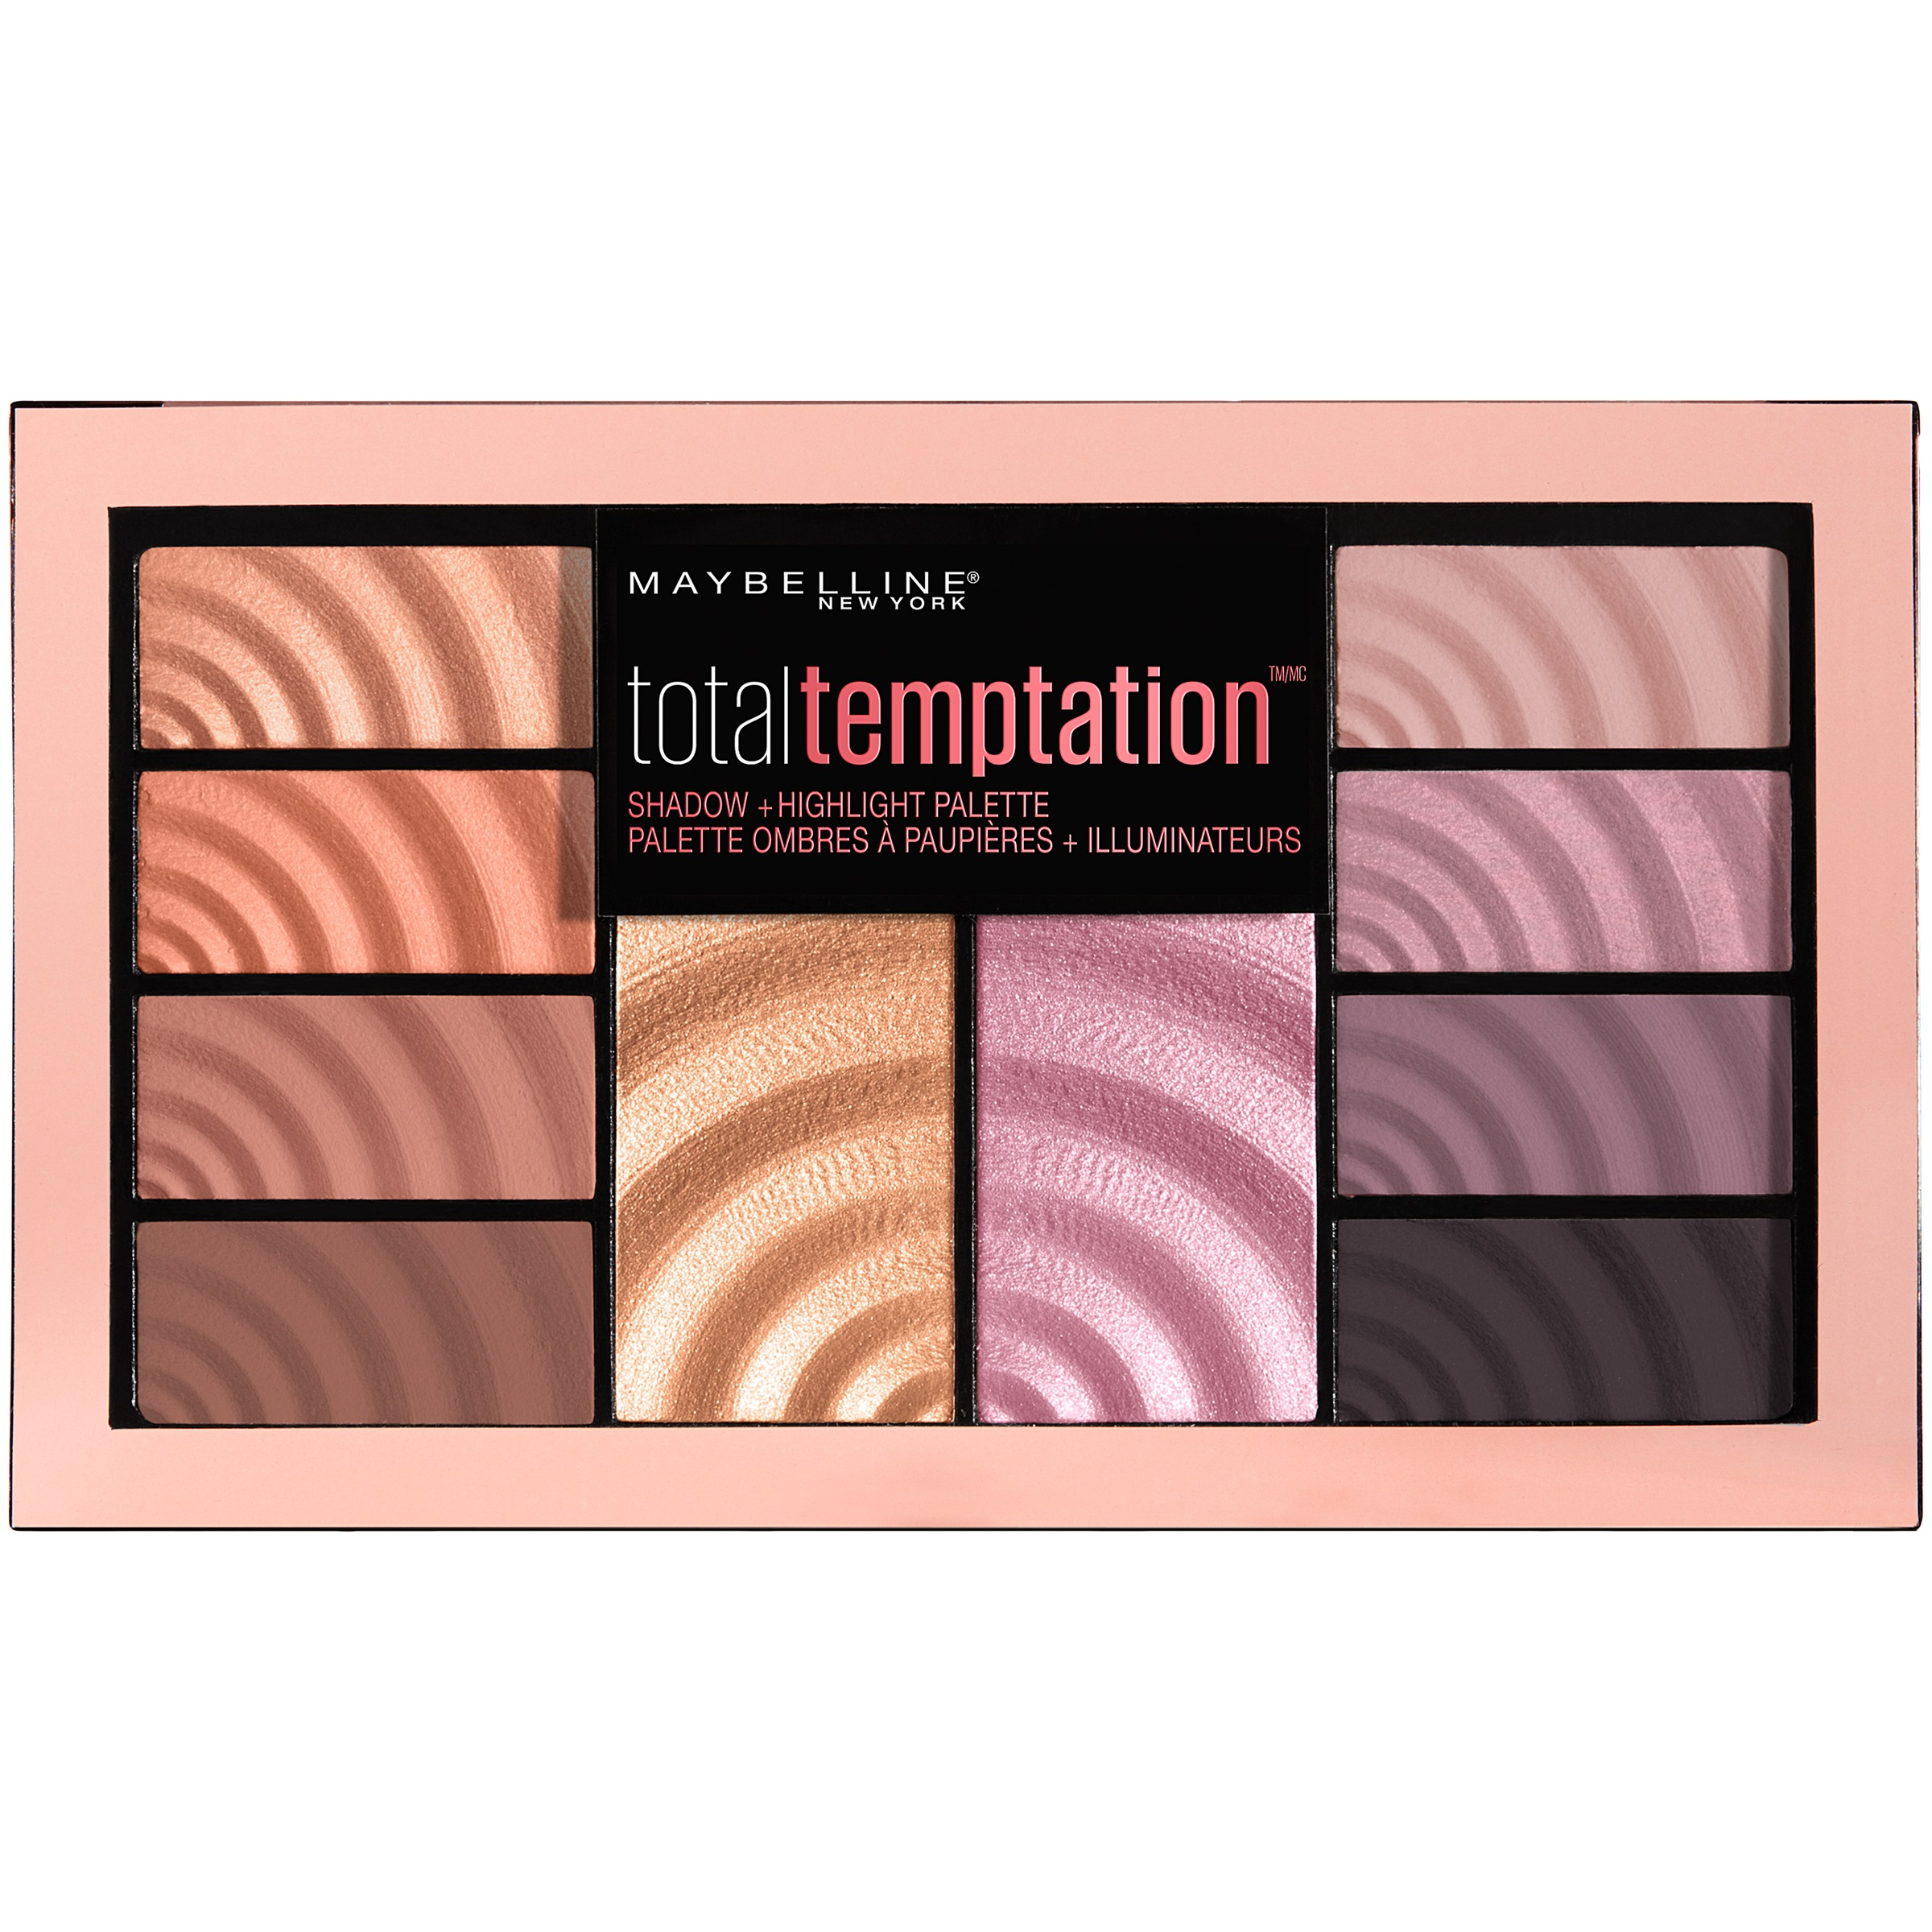 Maybelline New York Total Temptation Shadow + Highlight Palette, 0.42 oz.